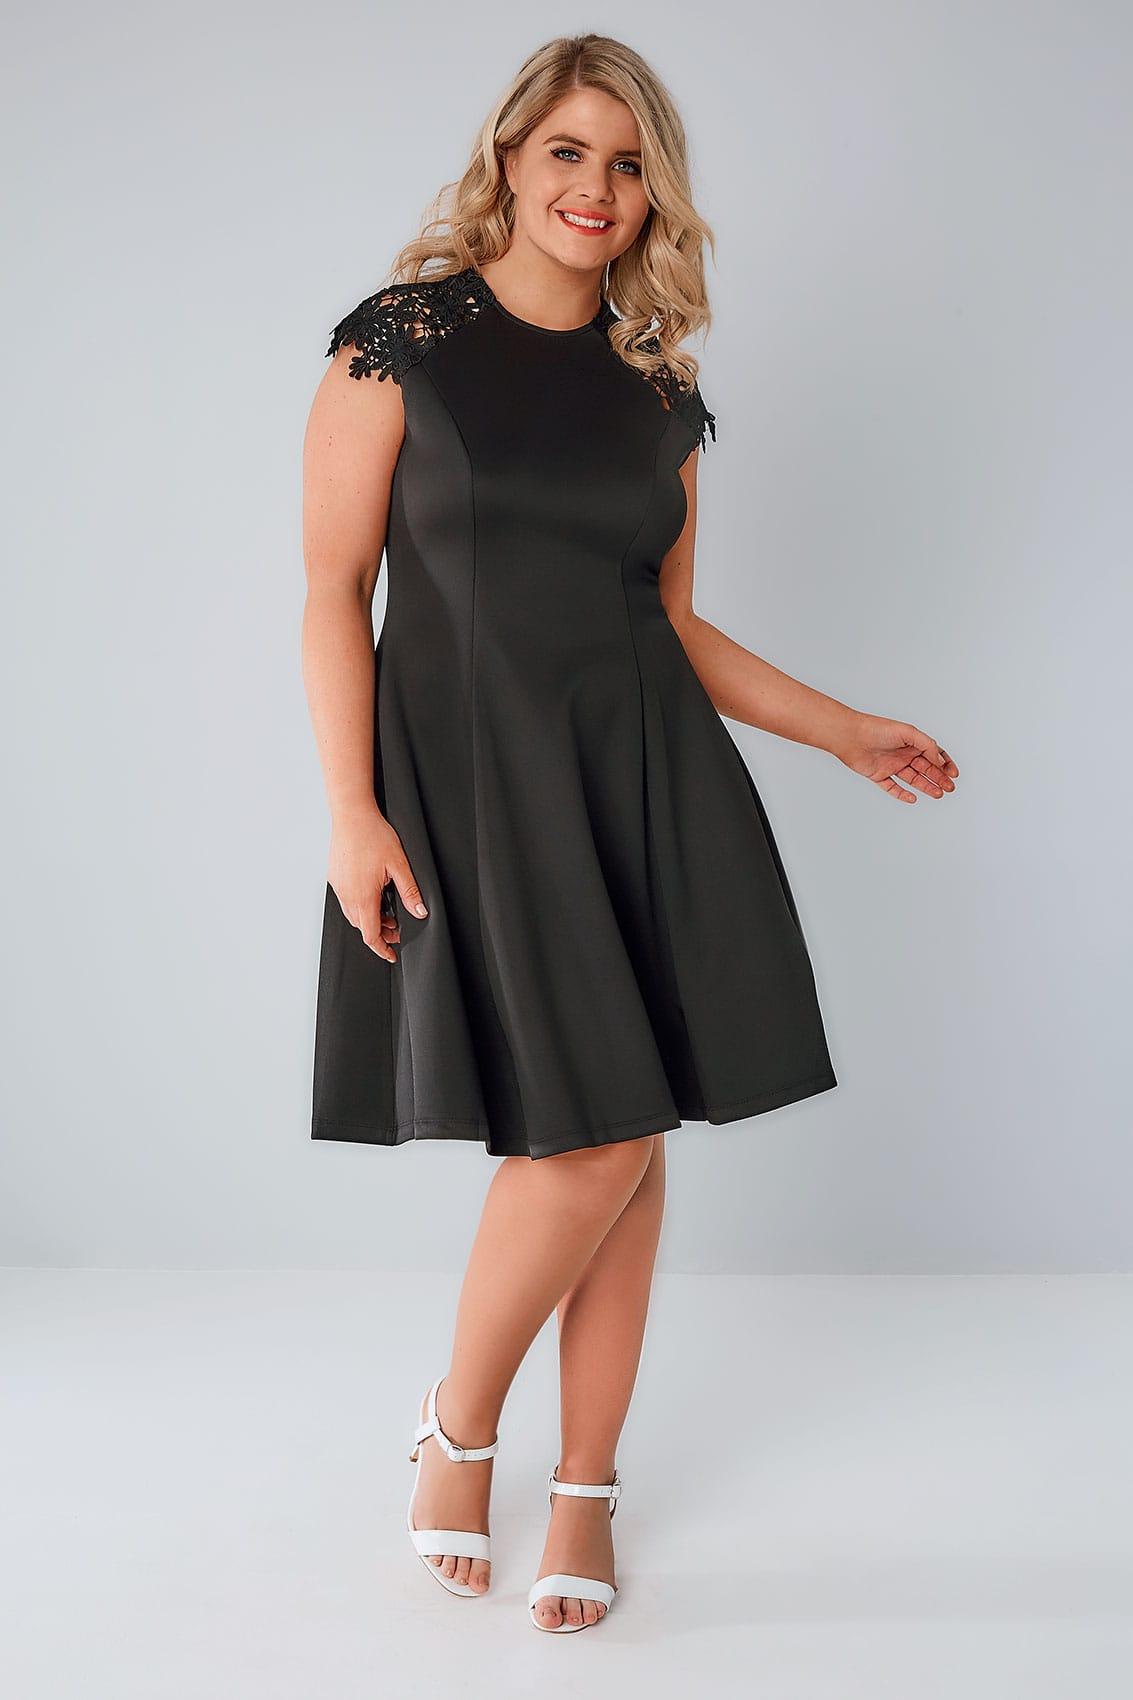 PRASLIN Black Skater Dress With Lace Shoulders, Plus size ...